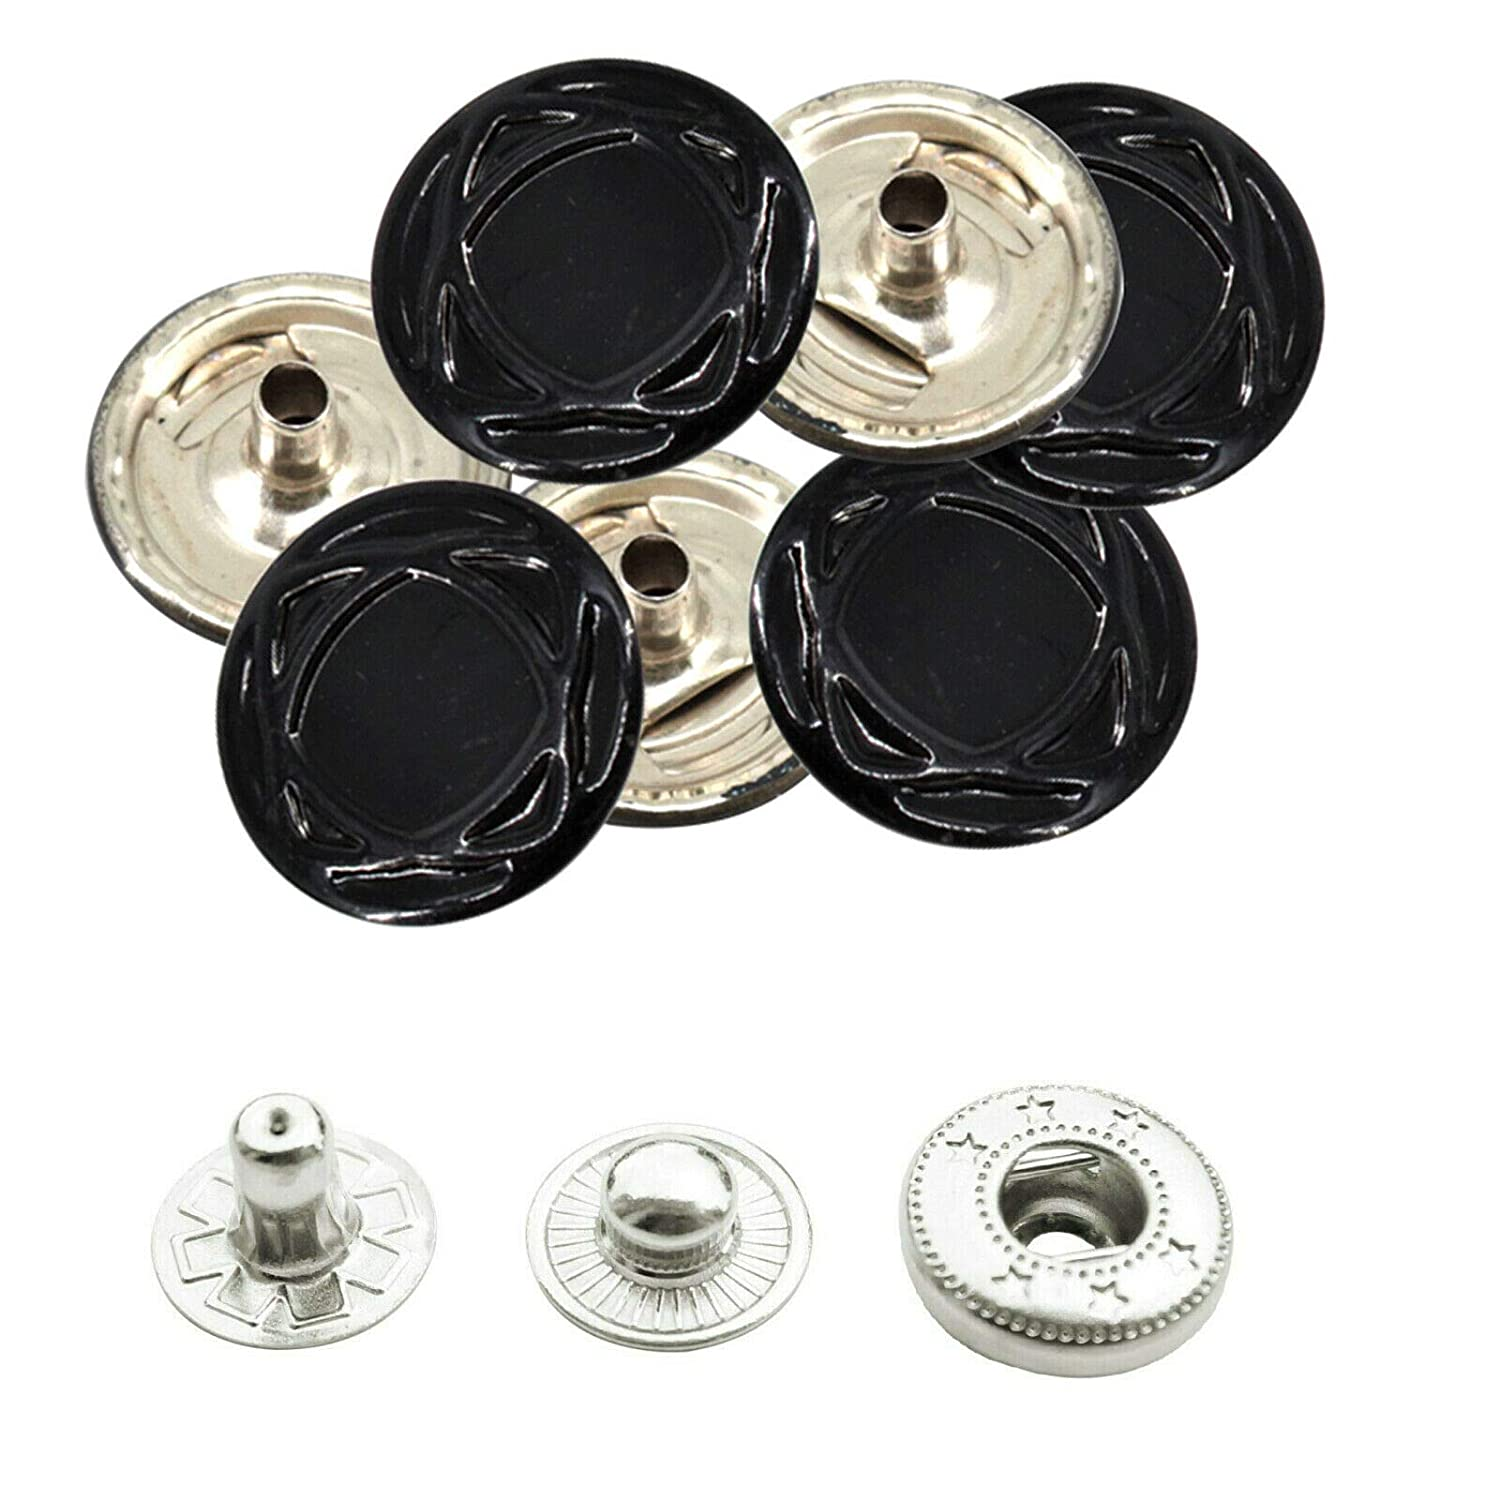 Bags 10pcs Leathercraft Trimming Shop Press Studs Silver 4 Part Snap Fasteners with Fixing Tools for Clothing 15mm DIY Craft Projects Fashion Accessories